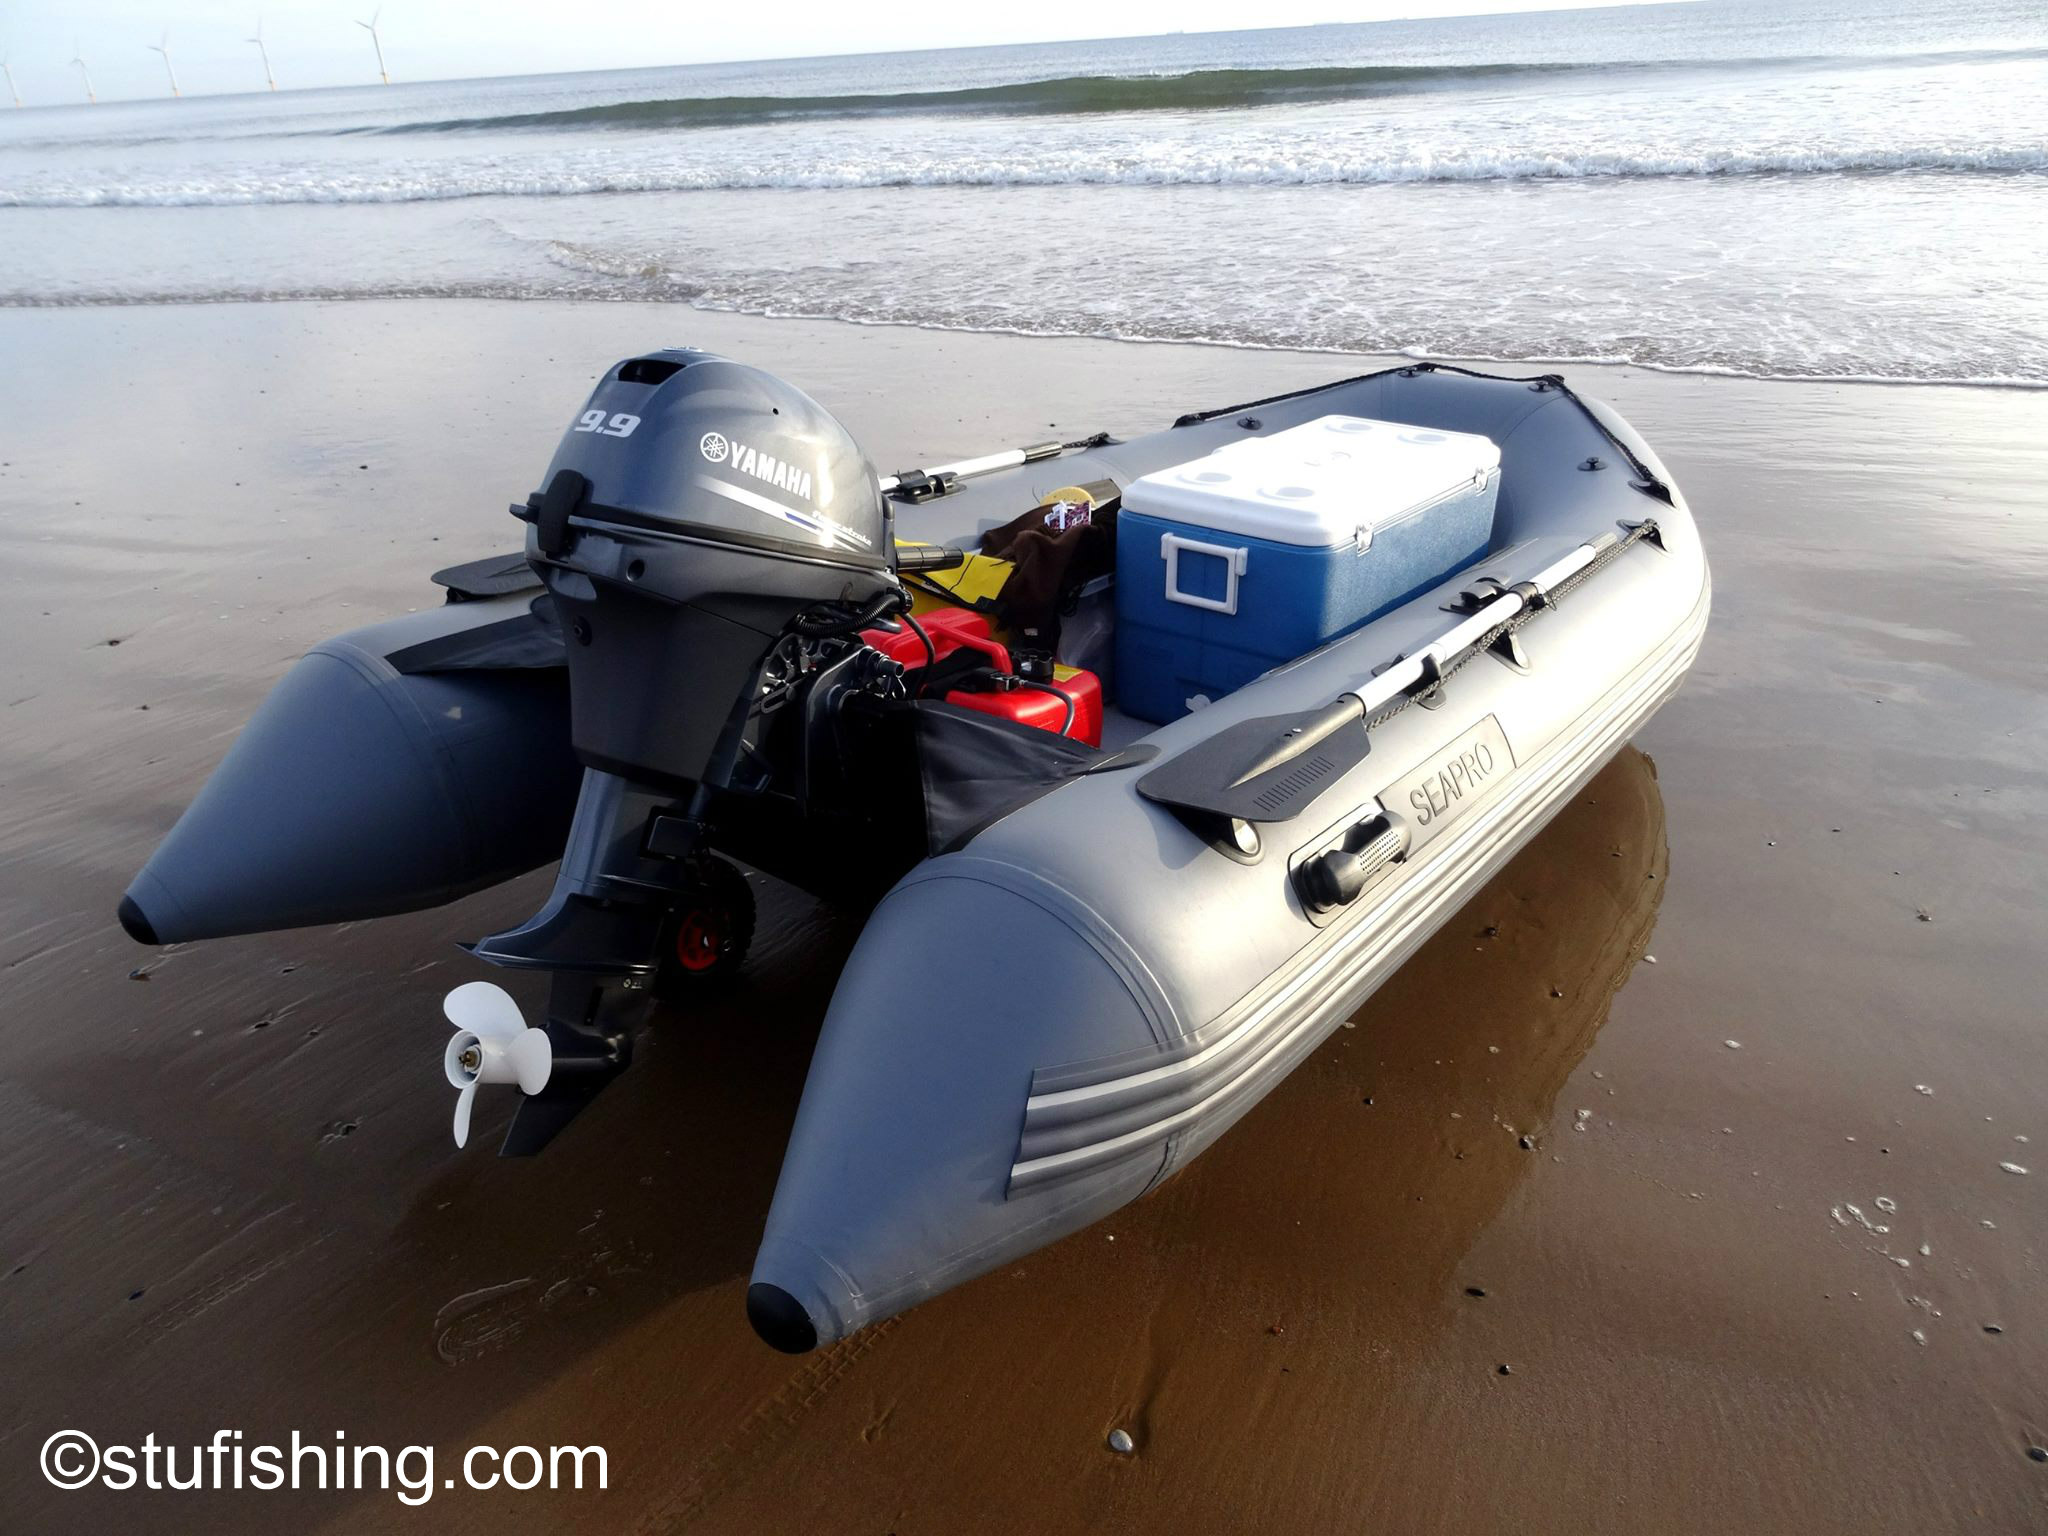 The Seapro 340 Inflatable Boat – Another Great Boat